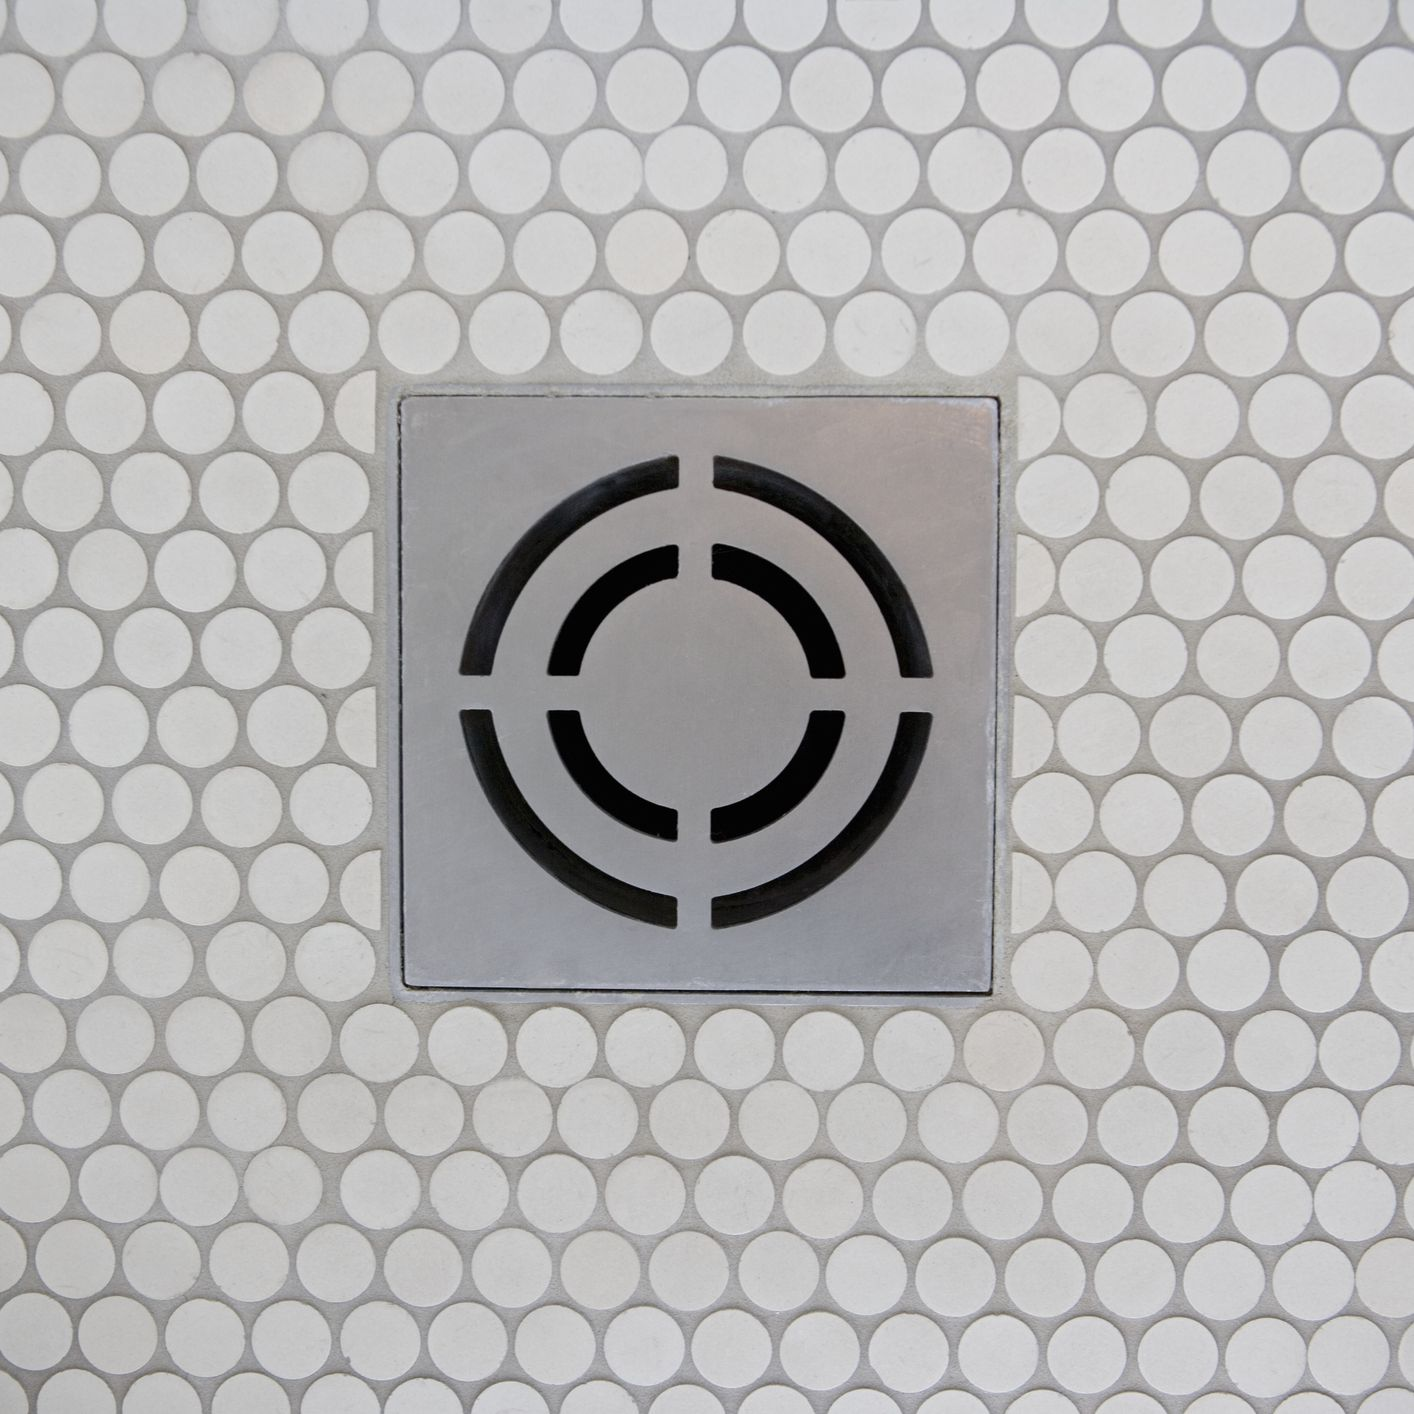 How to Install a Floor Drain for the Laundry Room